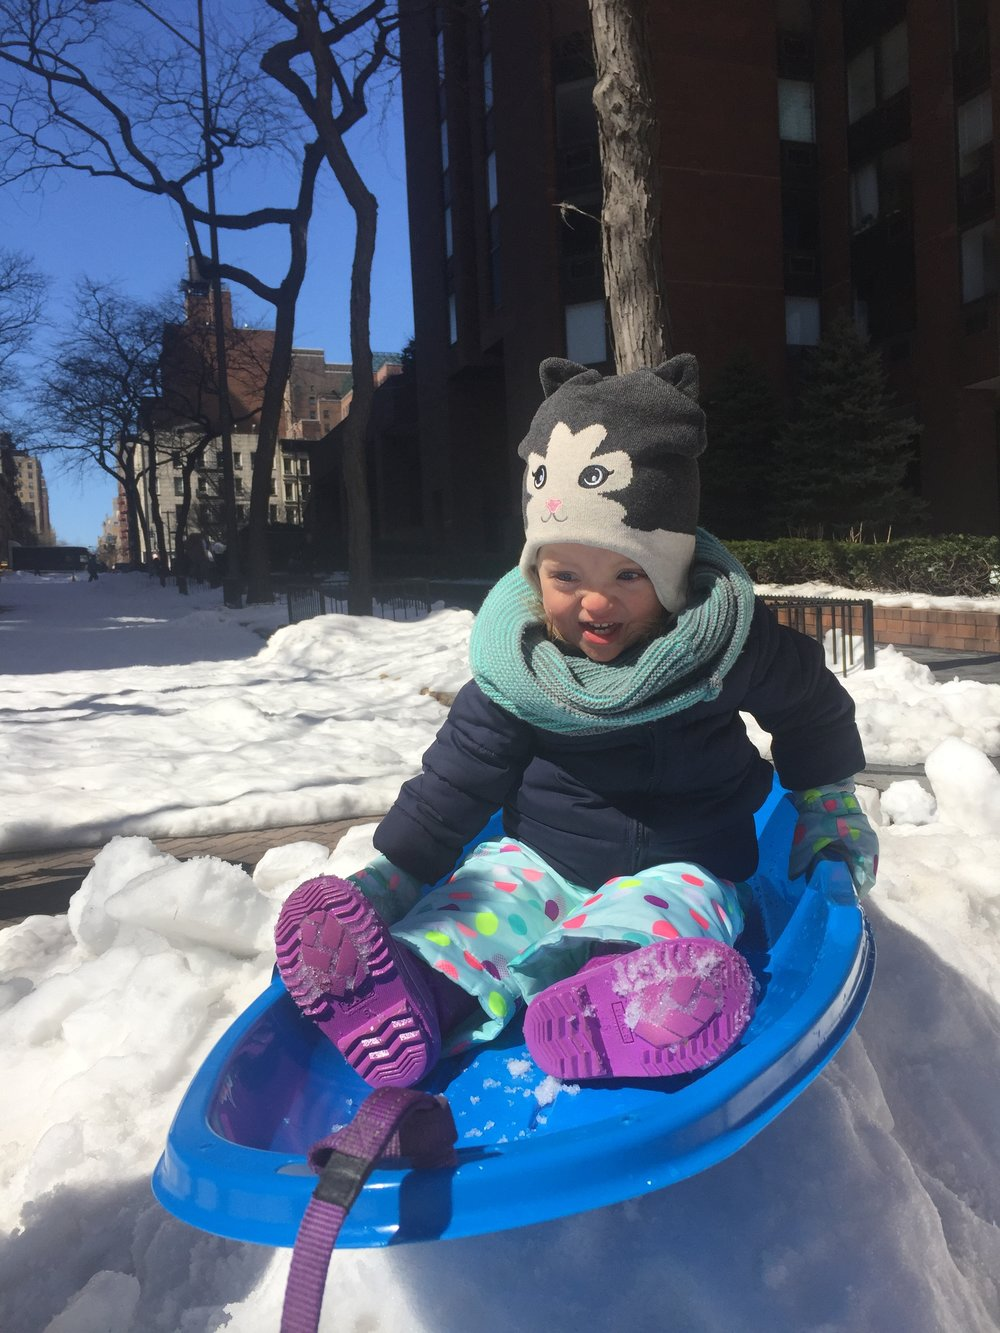 """Third times a charm for our little """"dare devil"""" enjoying sledding... FINALLY! Especially because it means Robby gets to go more :D lol"""